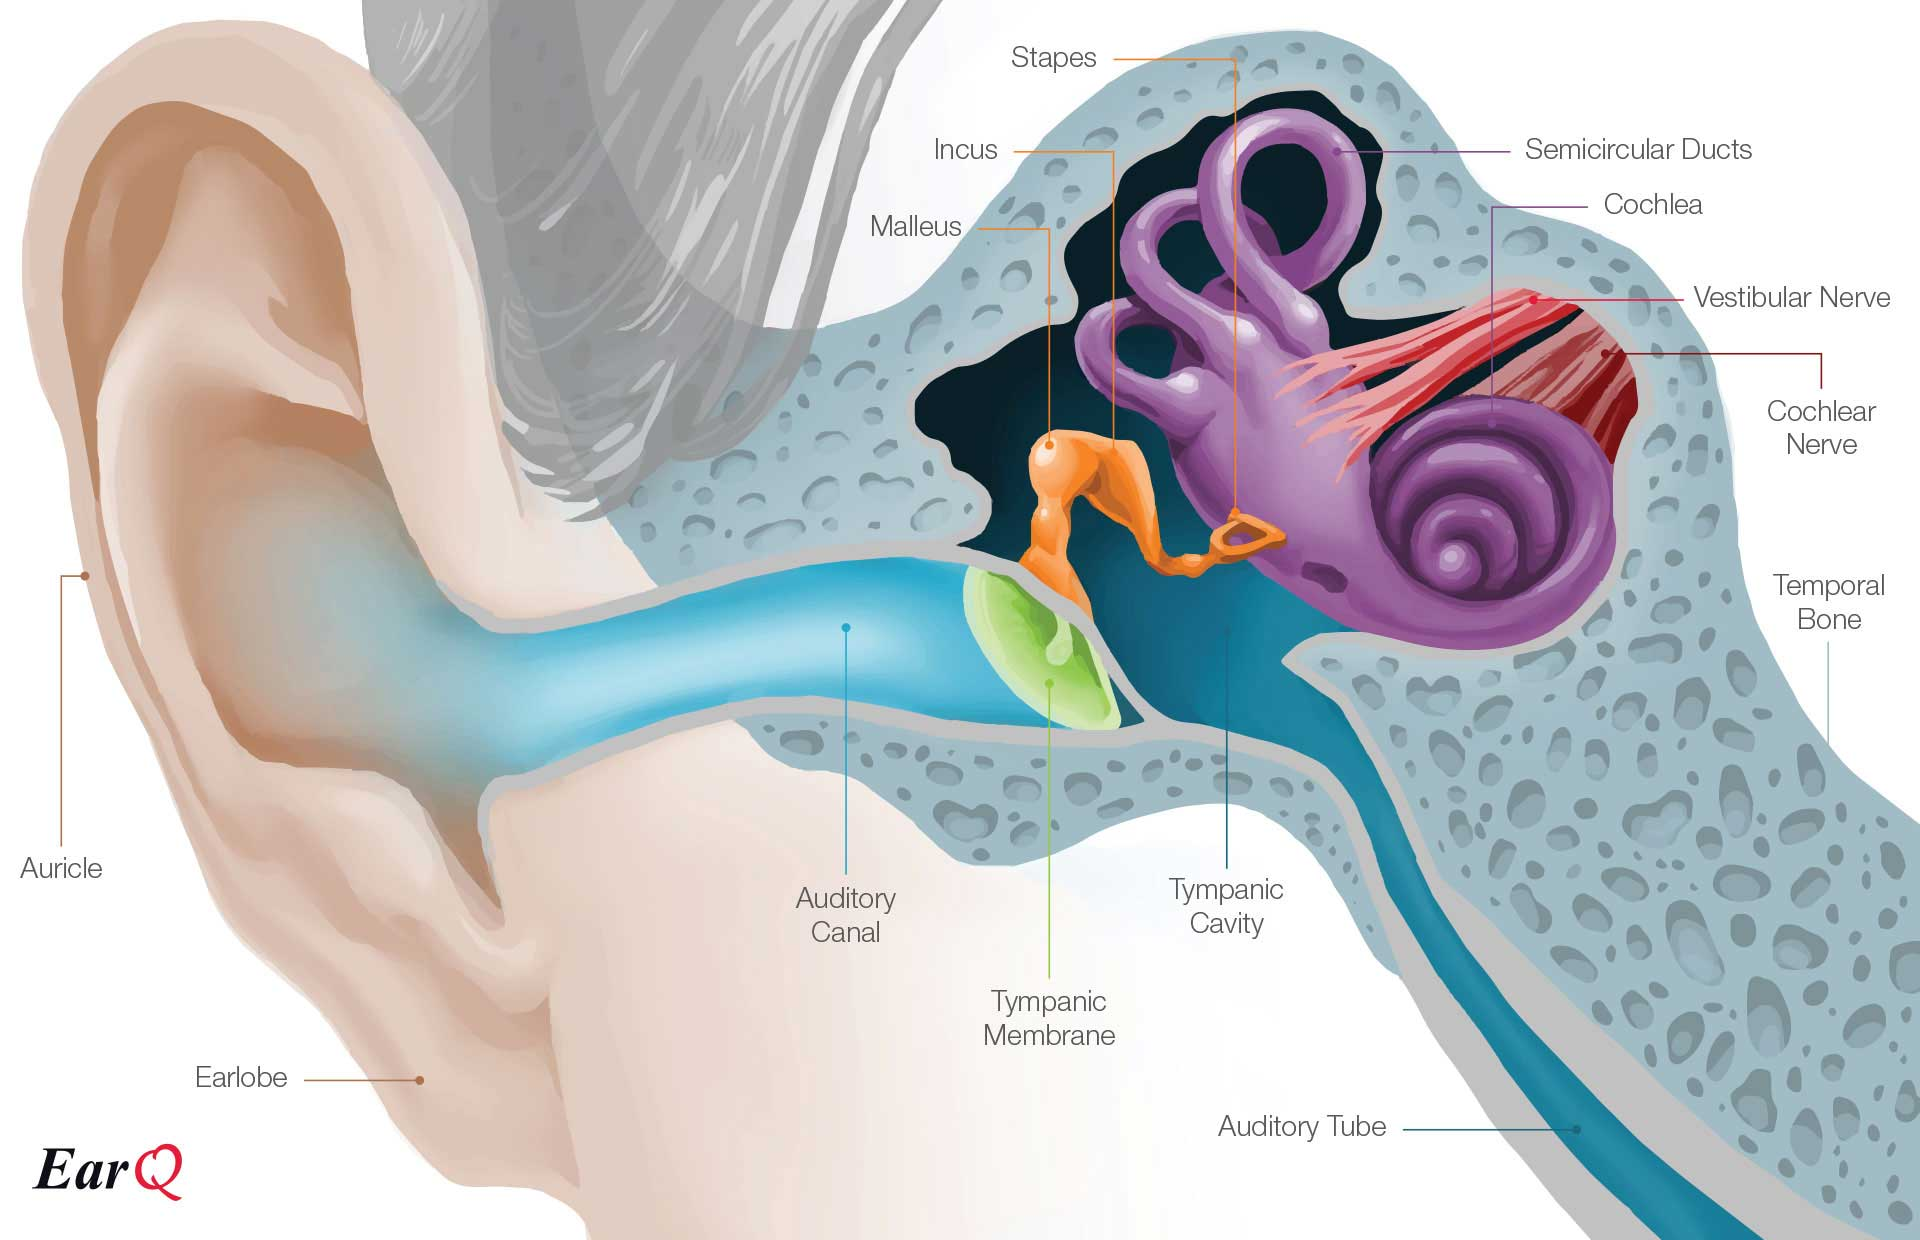 Ear anatomy images